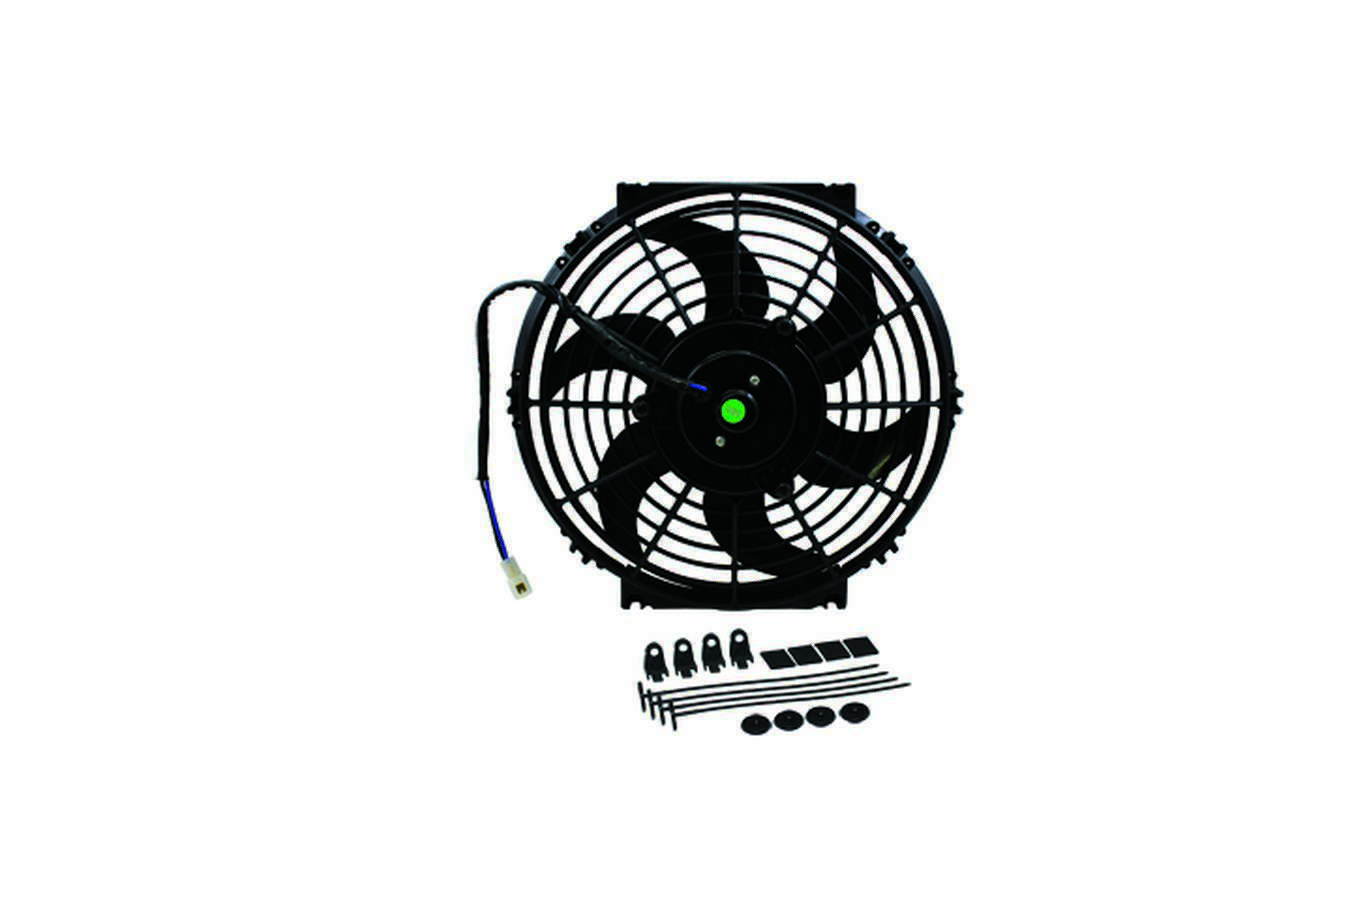 Specialty Products 3181 Electric Cooling Fan, 10 in Fan, Push / Pull, 1105 CFM, 12V, Curved Blade, 8-7/8 x 11-1/2 in, 2-3/8 in Thick, Plastic, Each